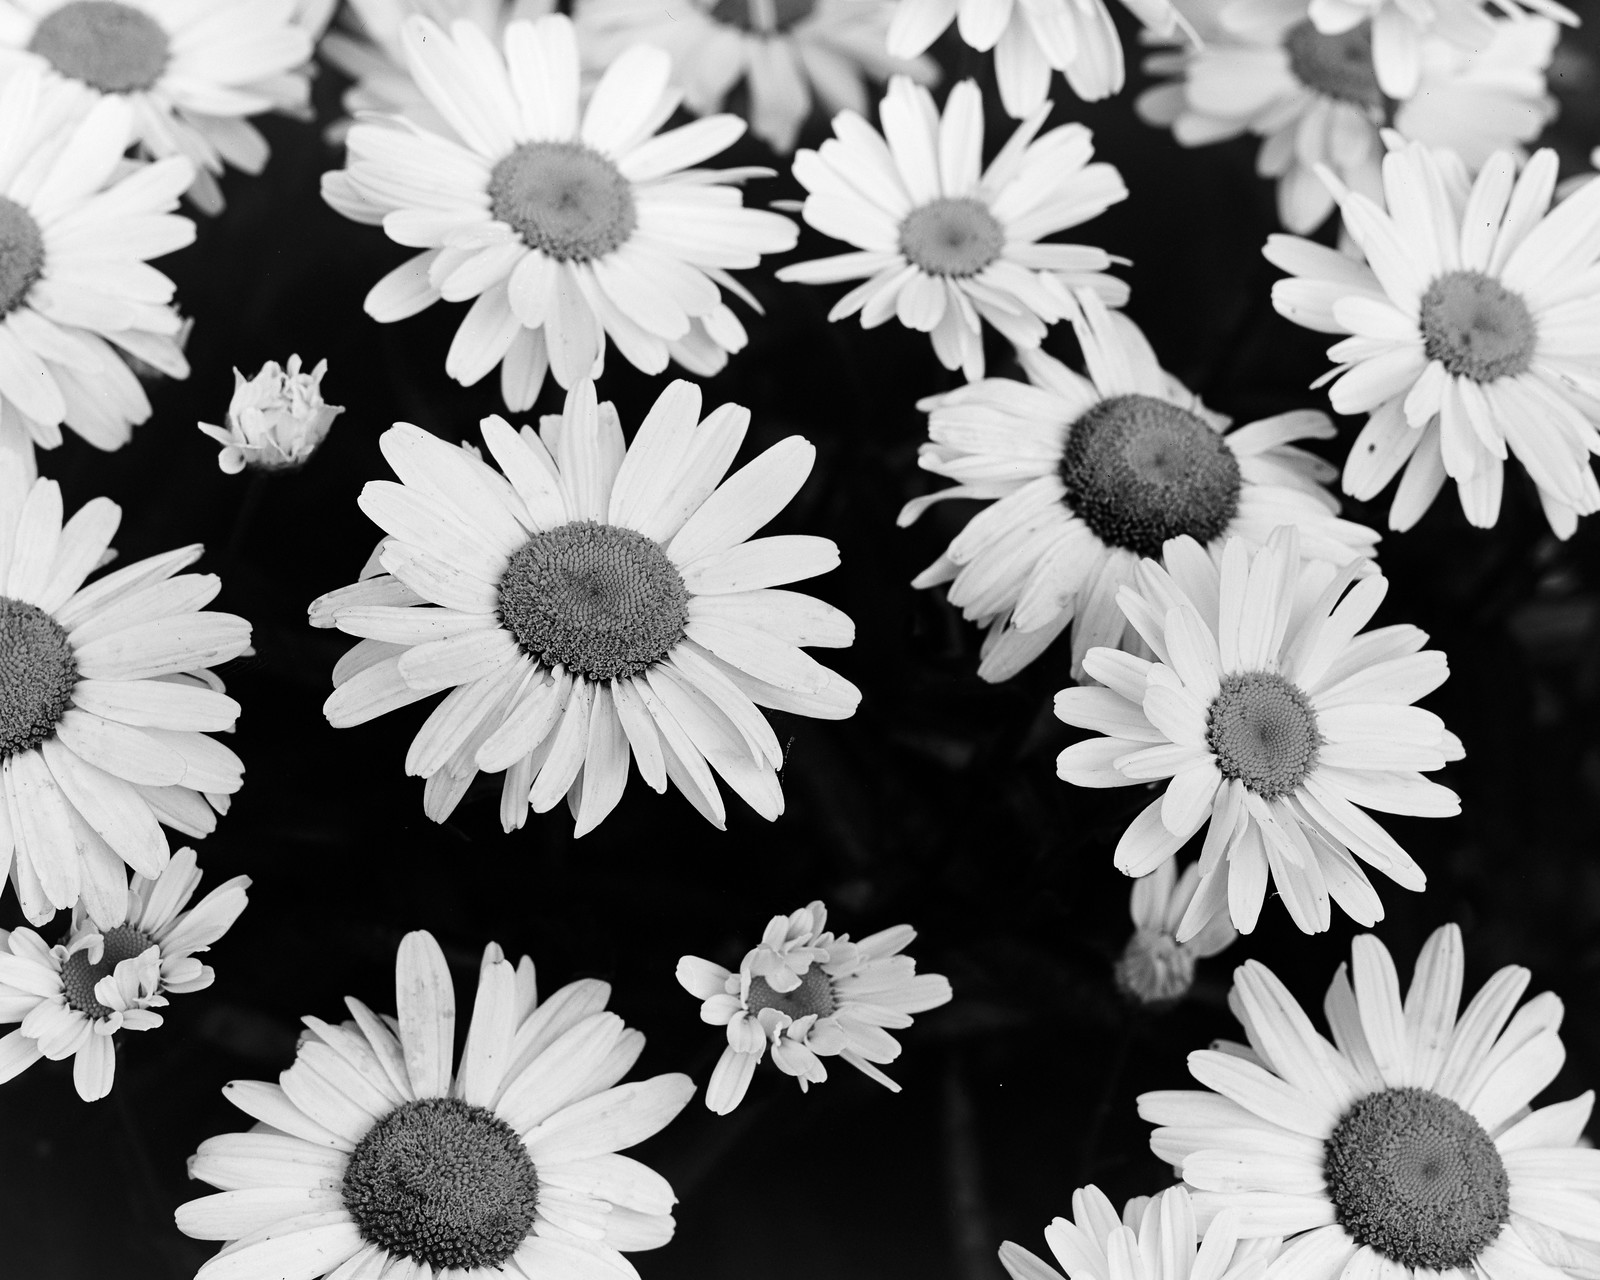 More Daisies